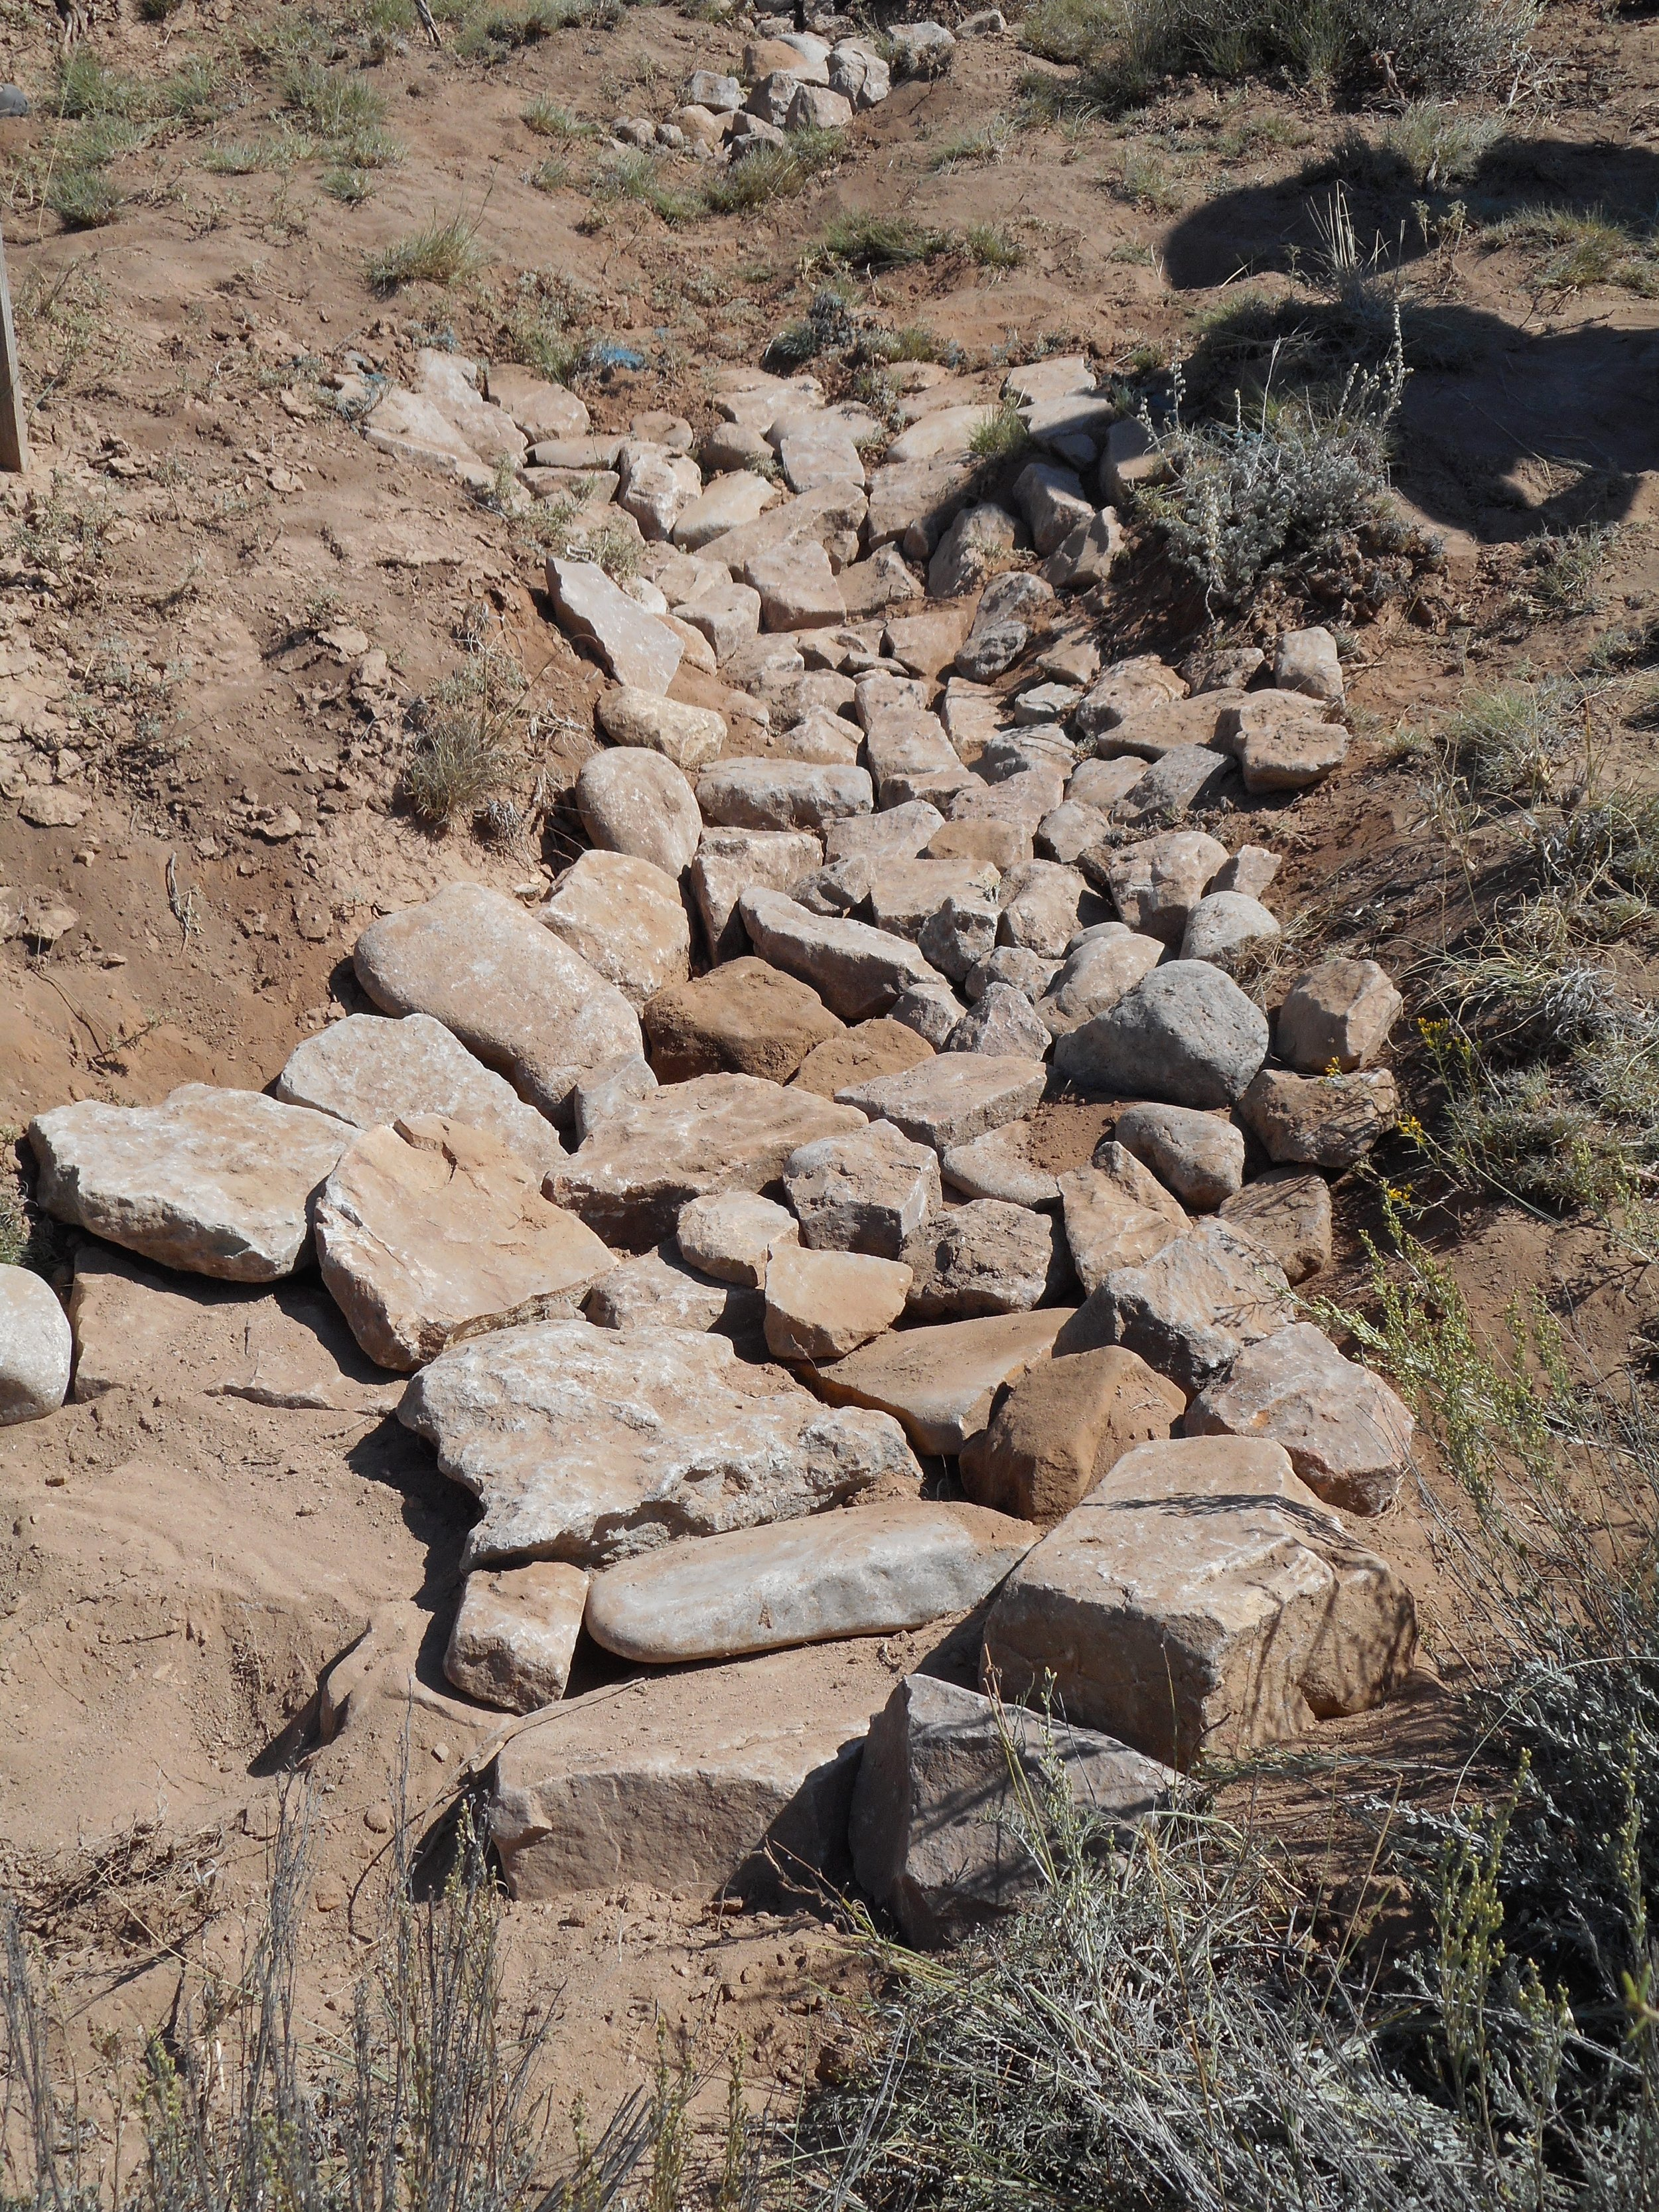 Click  here  to see a video of how to build a rock rundown to control erosion.